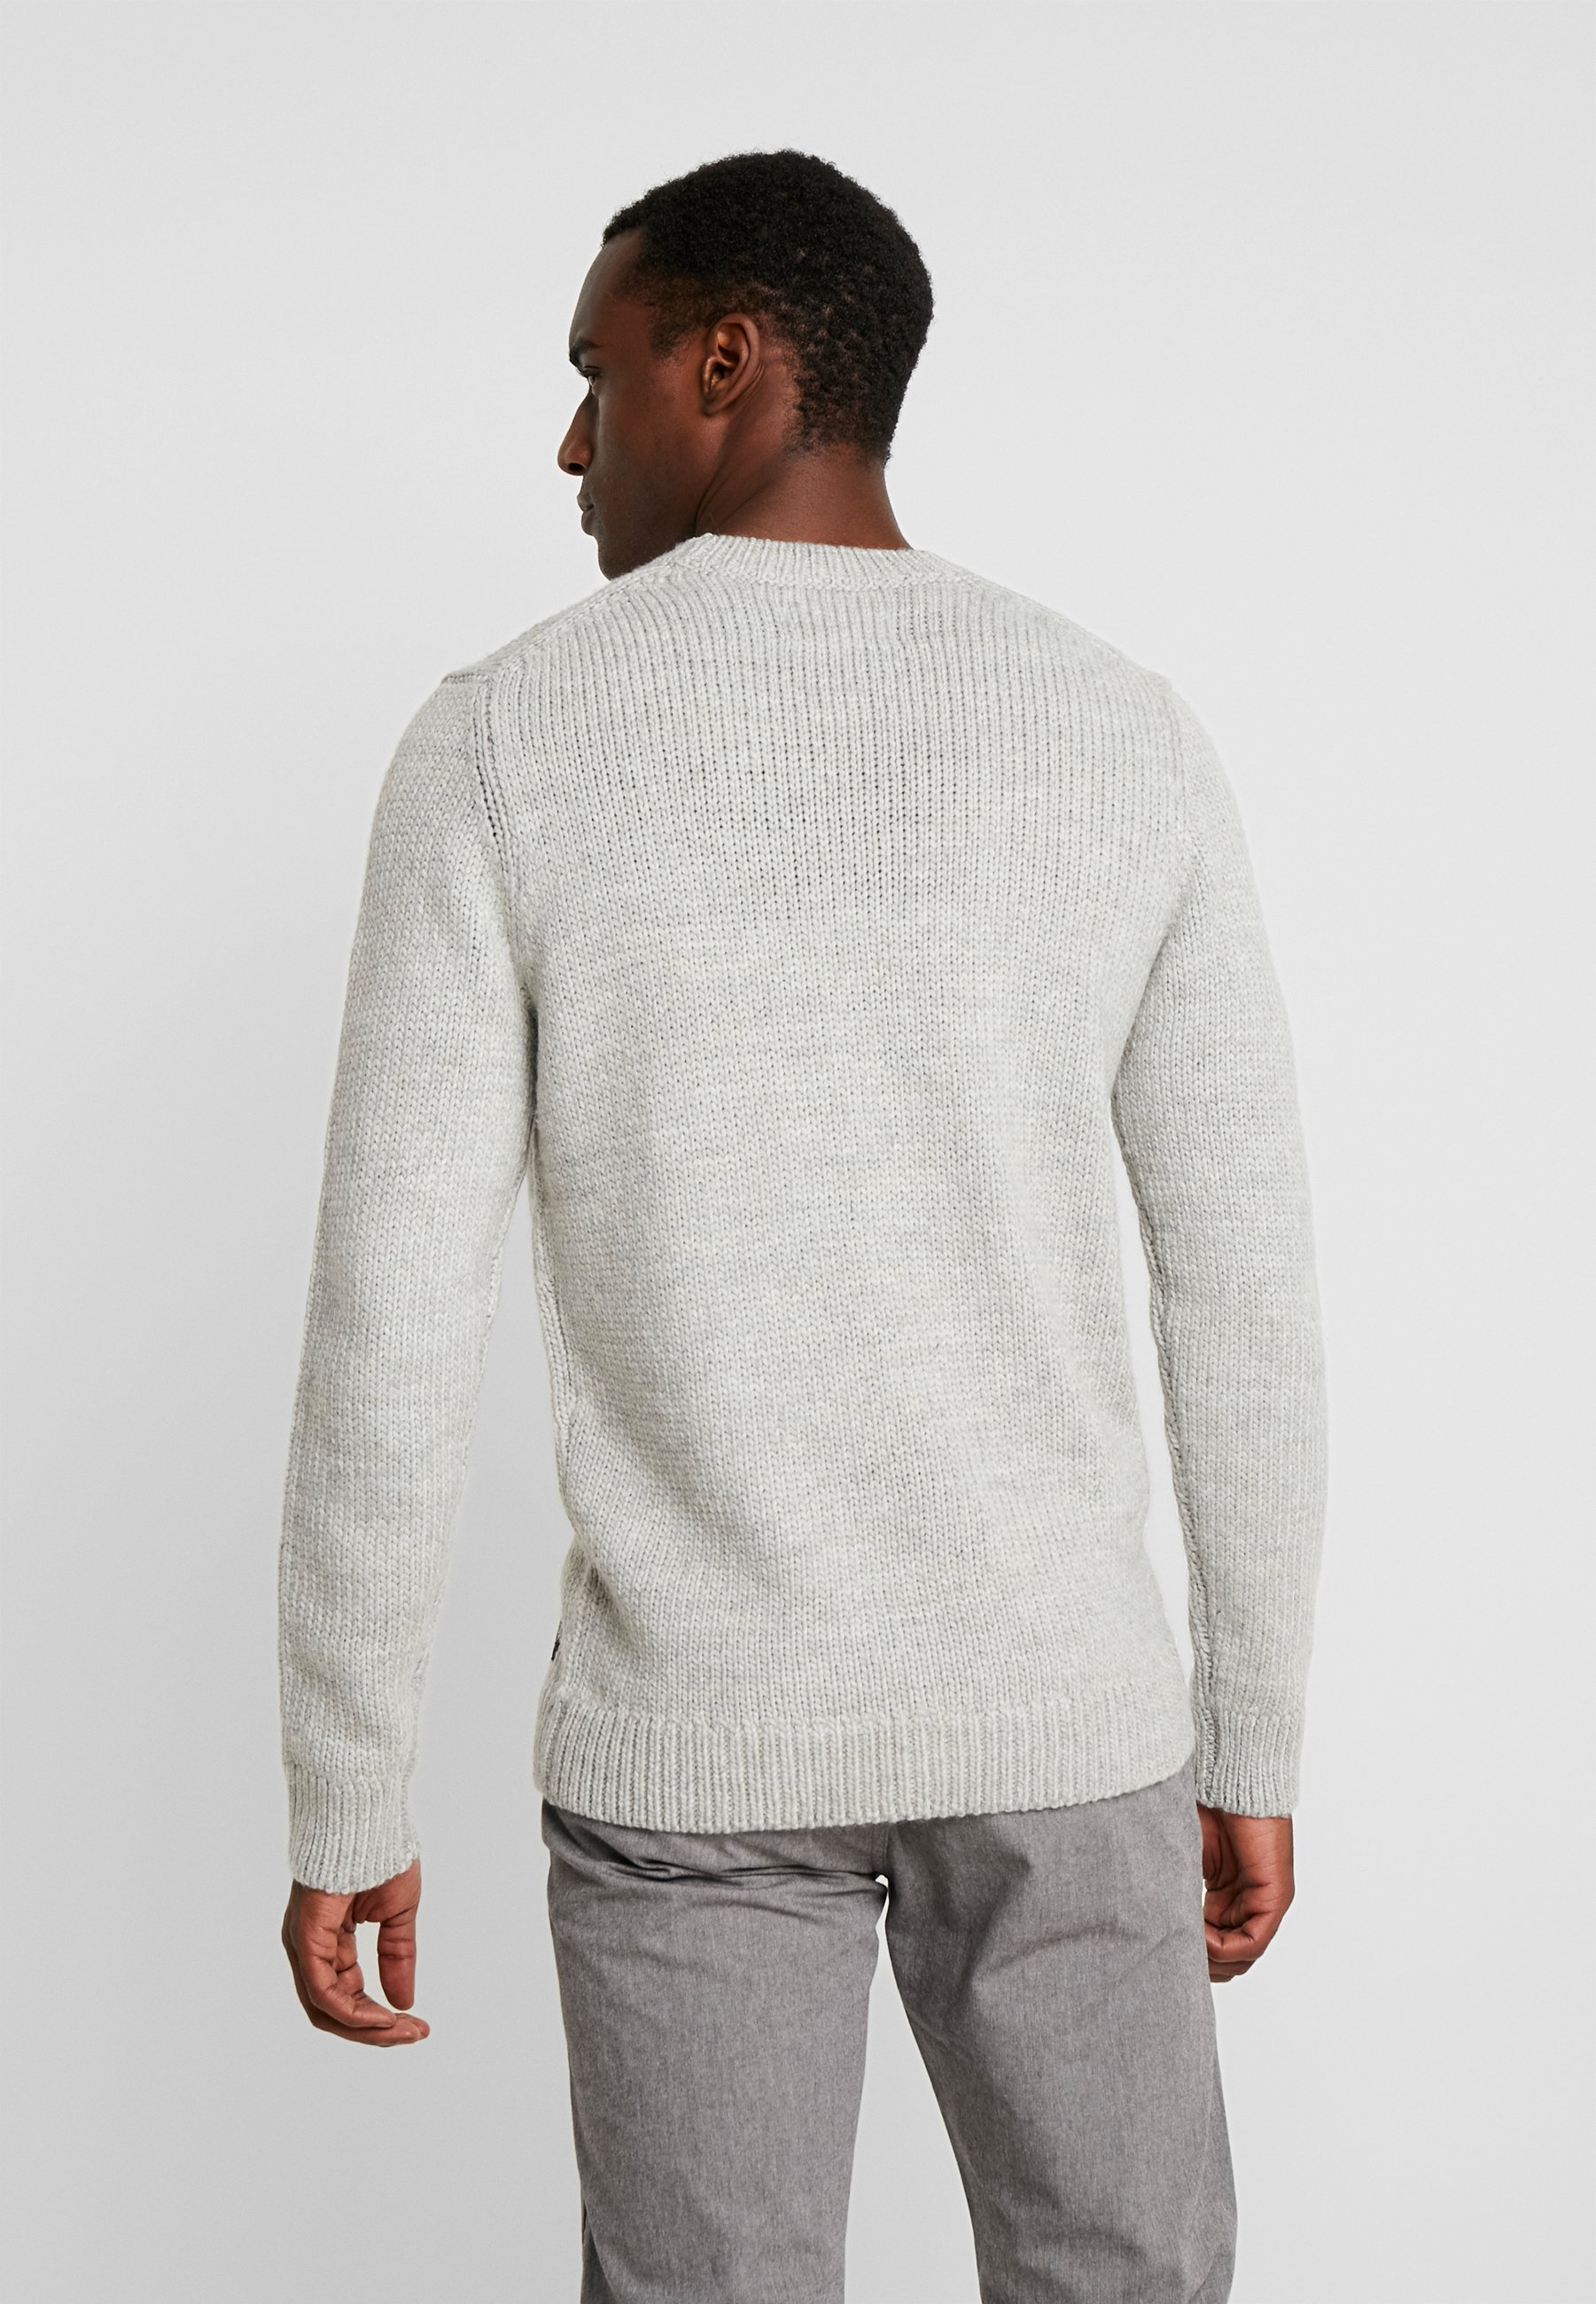 Crewneck Melange Tailor Denim Grey Tom SweaterMaglione I7gv6Yybf